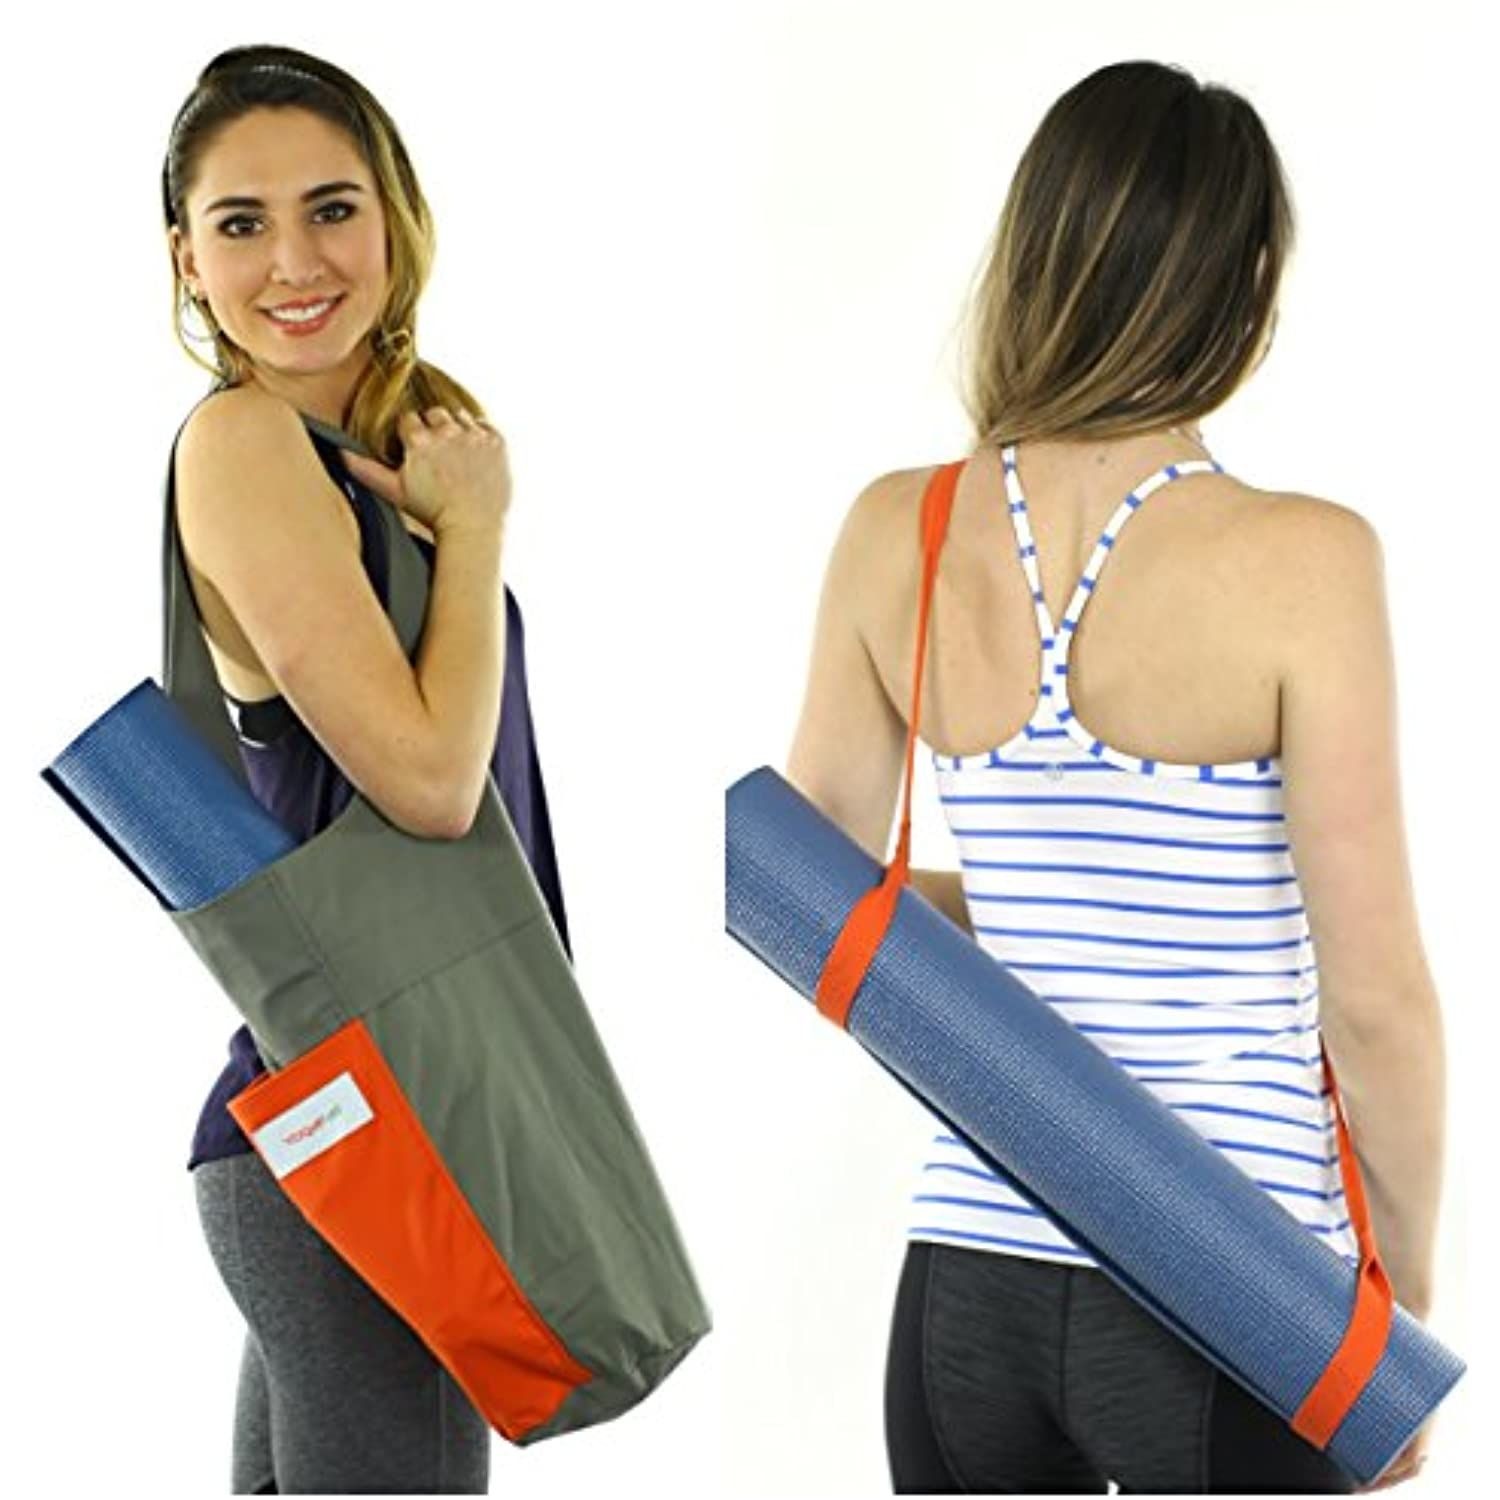 45+ Yoga strap to carry mat ideas